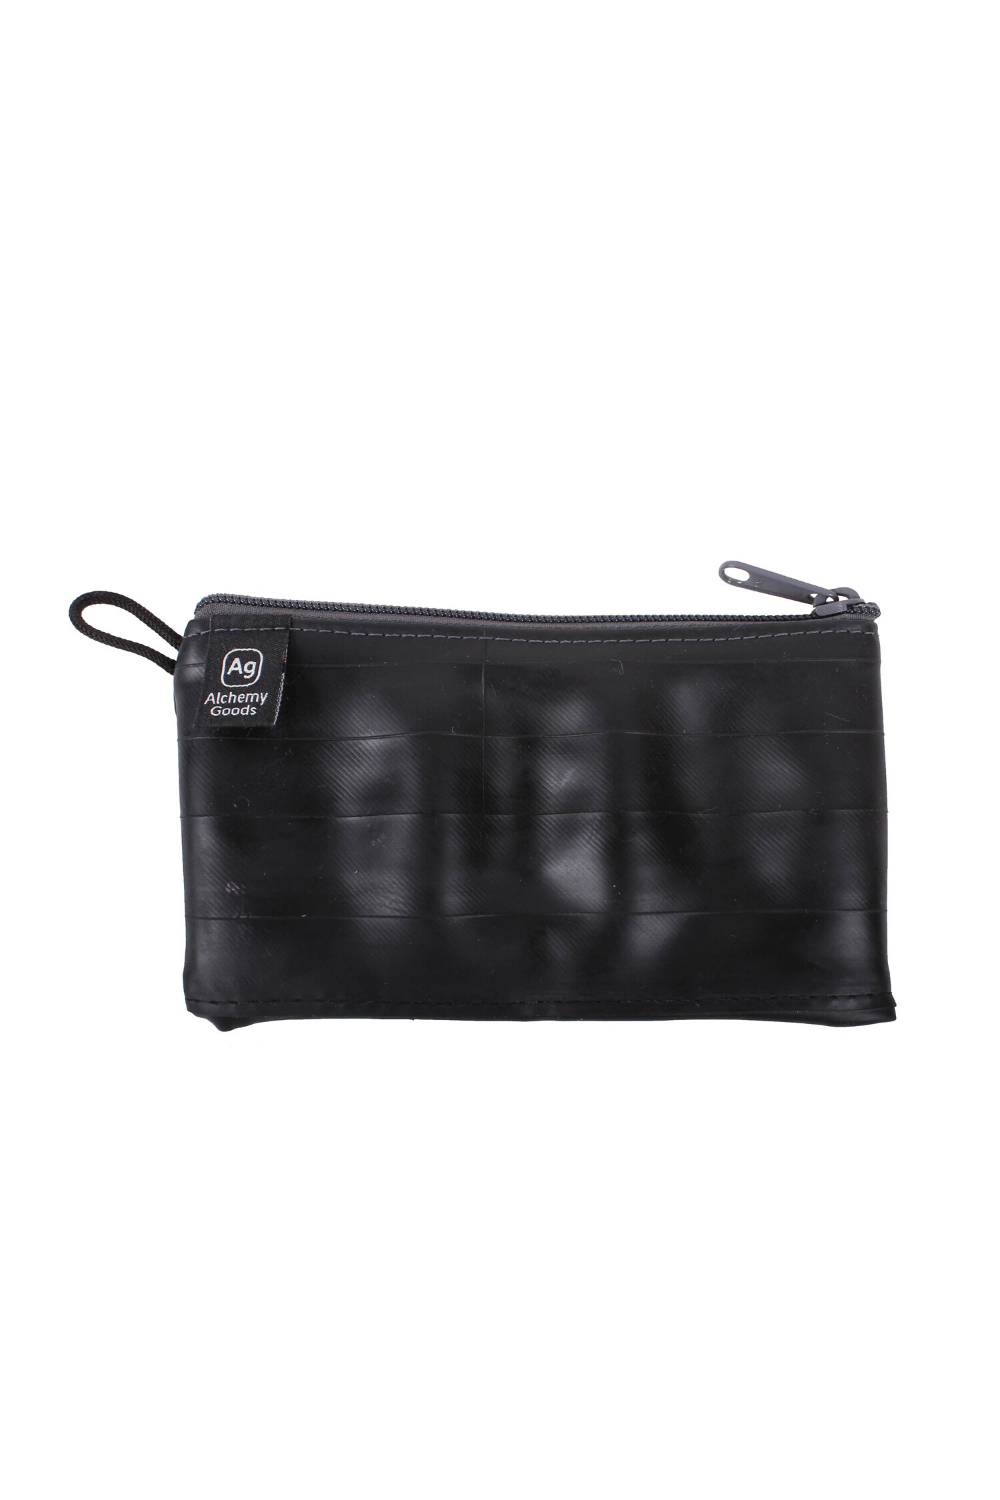 Alchemy Goods Men's Travel Kits Coal Zipper Pouch • Medium